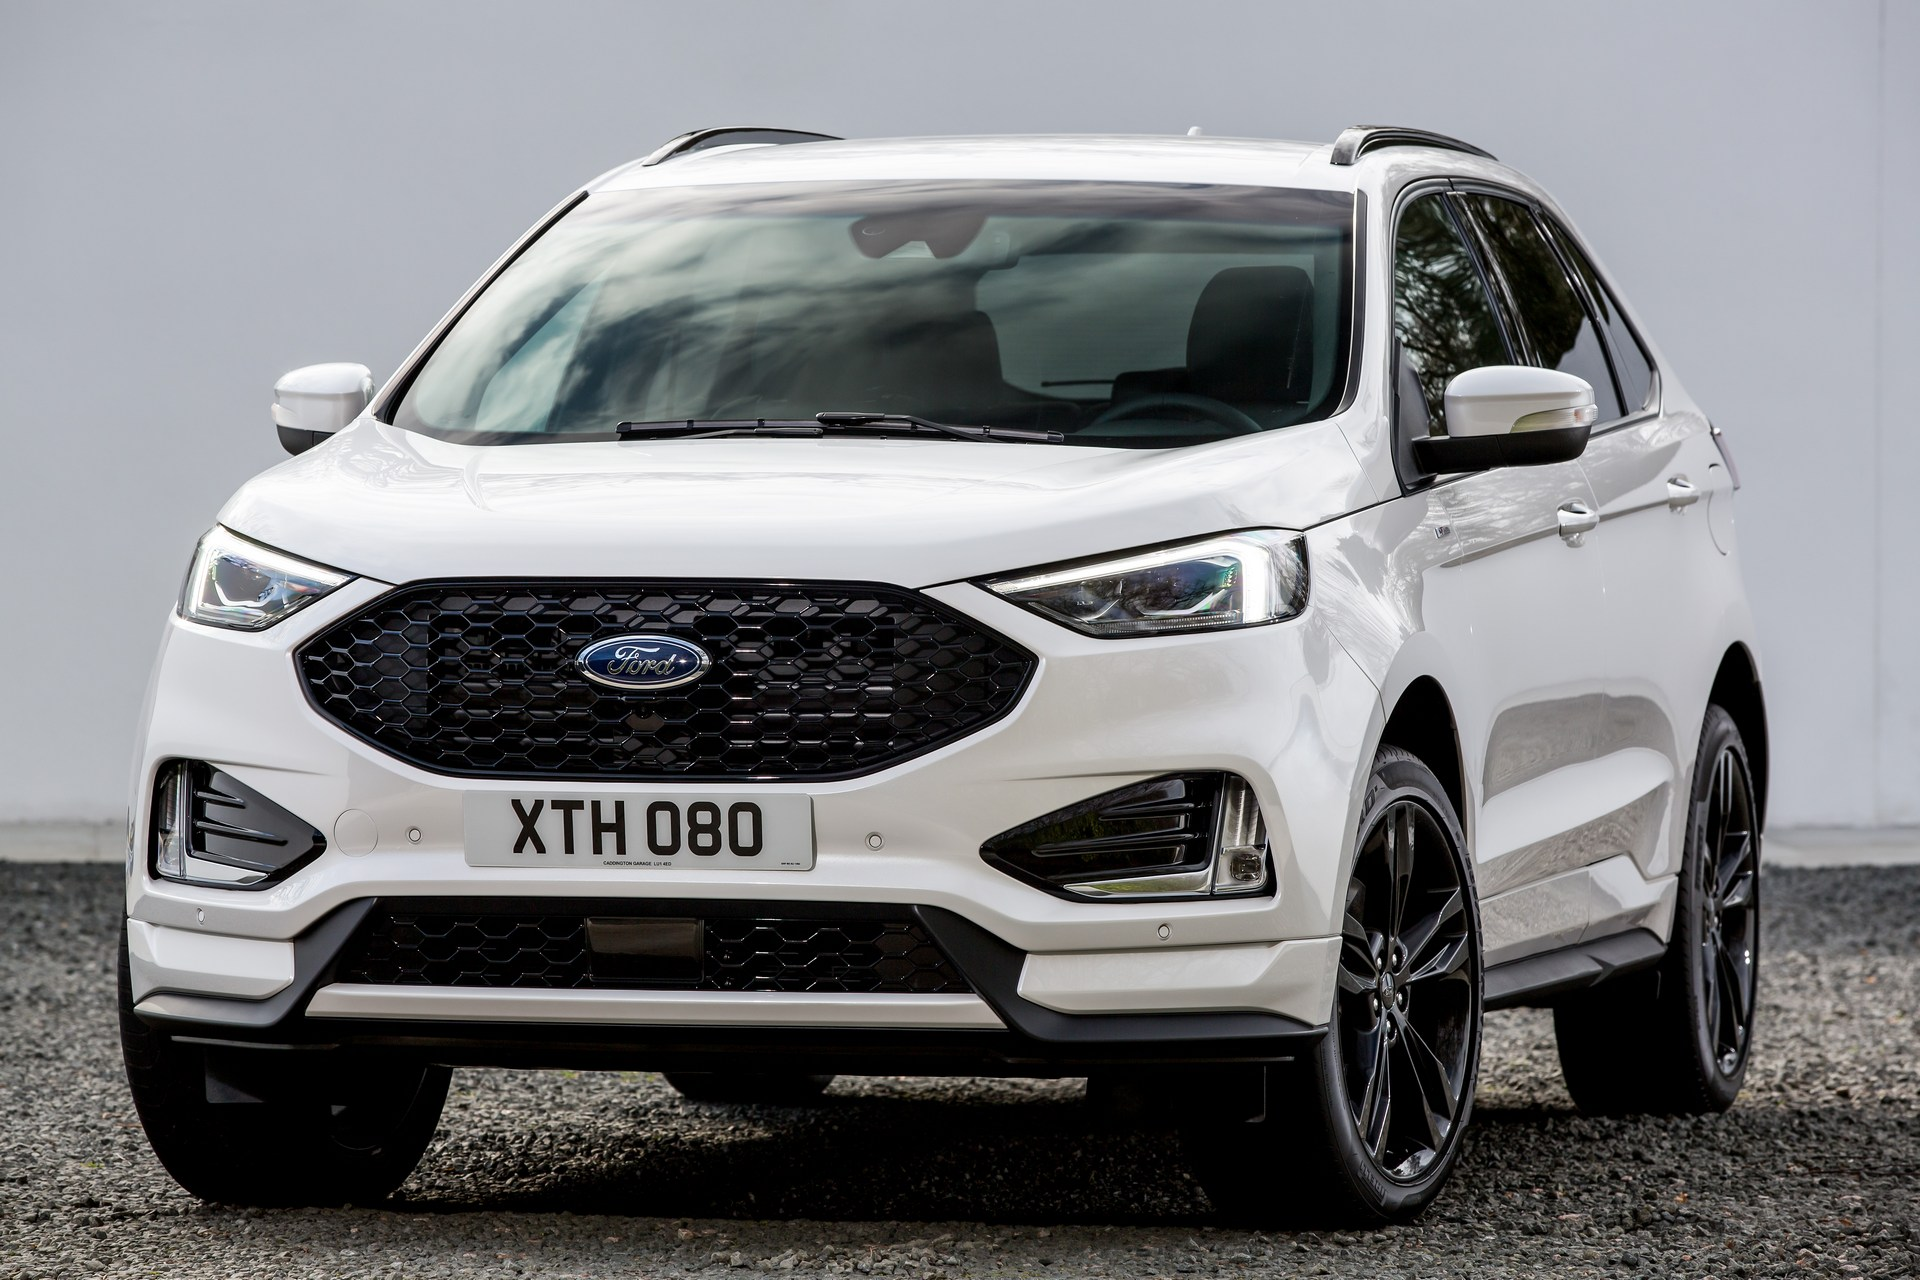 Ford Edge facelift 2018 Euro-Spec (18)